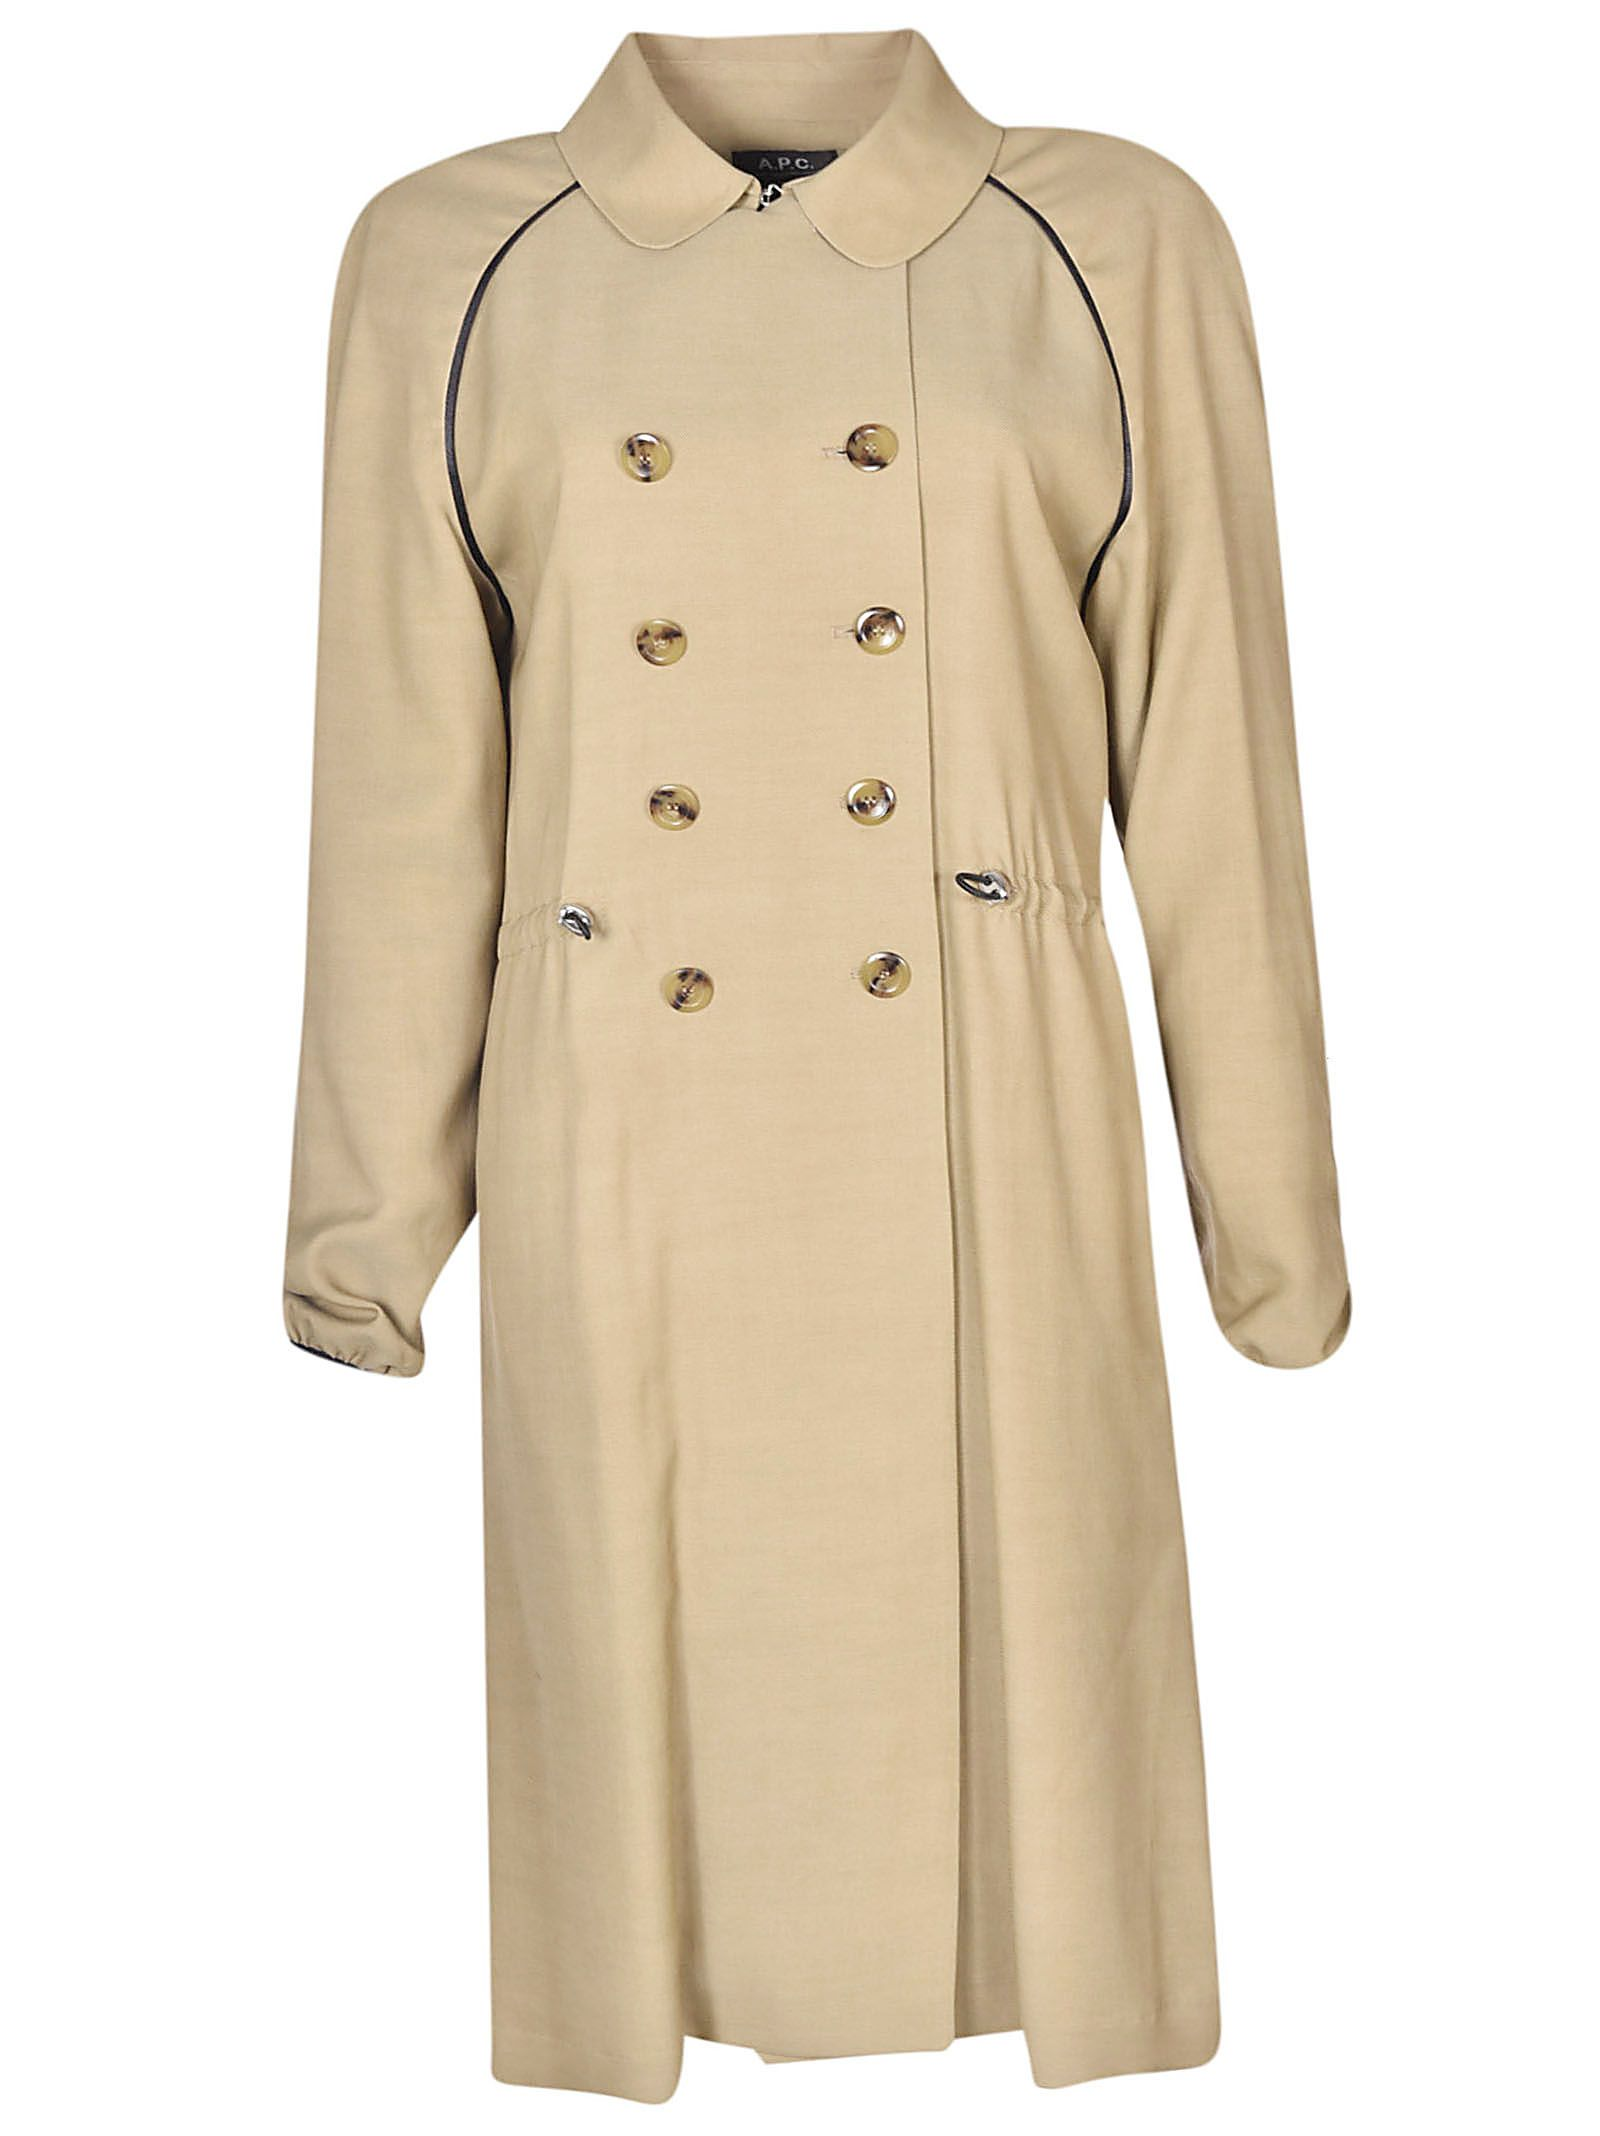 A.p.c. Double Breasted Trench Coat